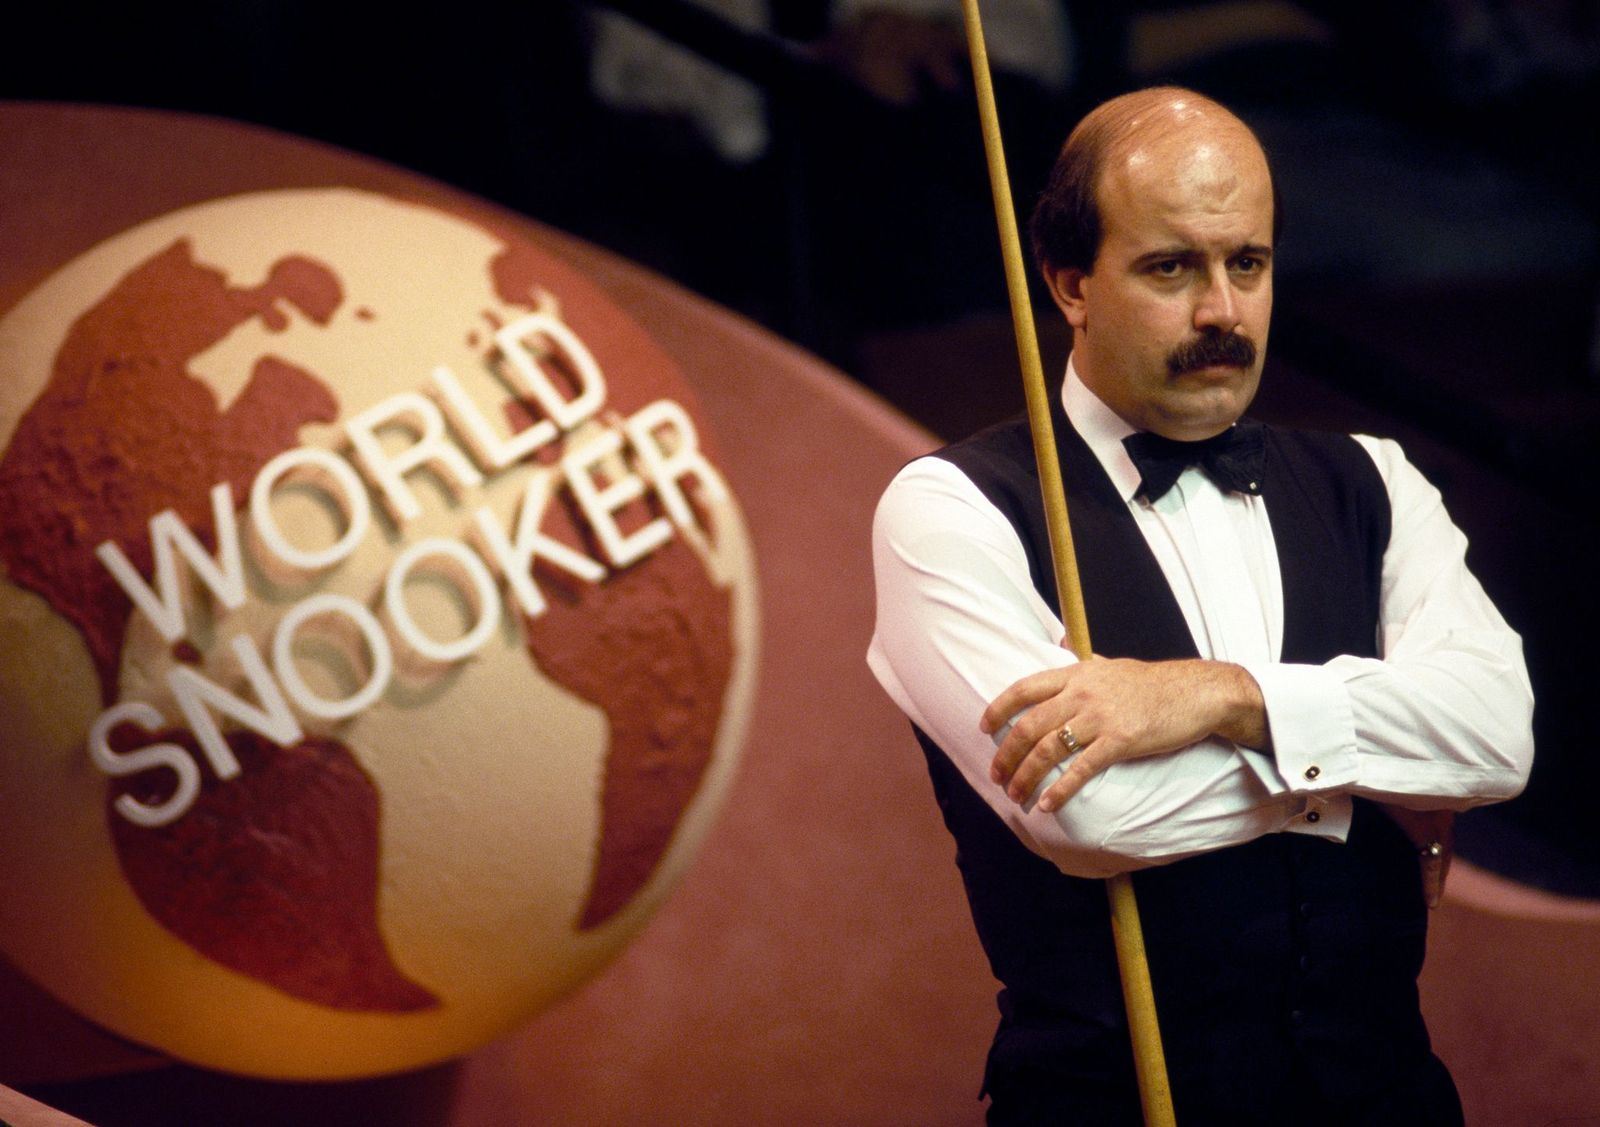 Willie Thorne playing in the World Snooker Championshipcirca April 1988   Photo: Bob Thomas Sports Photography/Getty Images